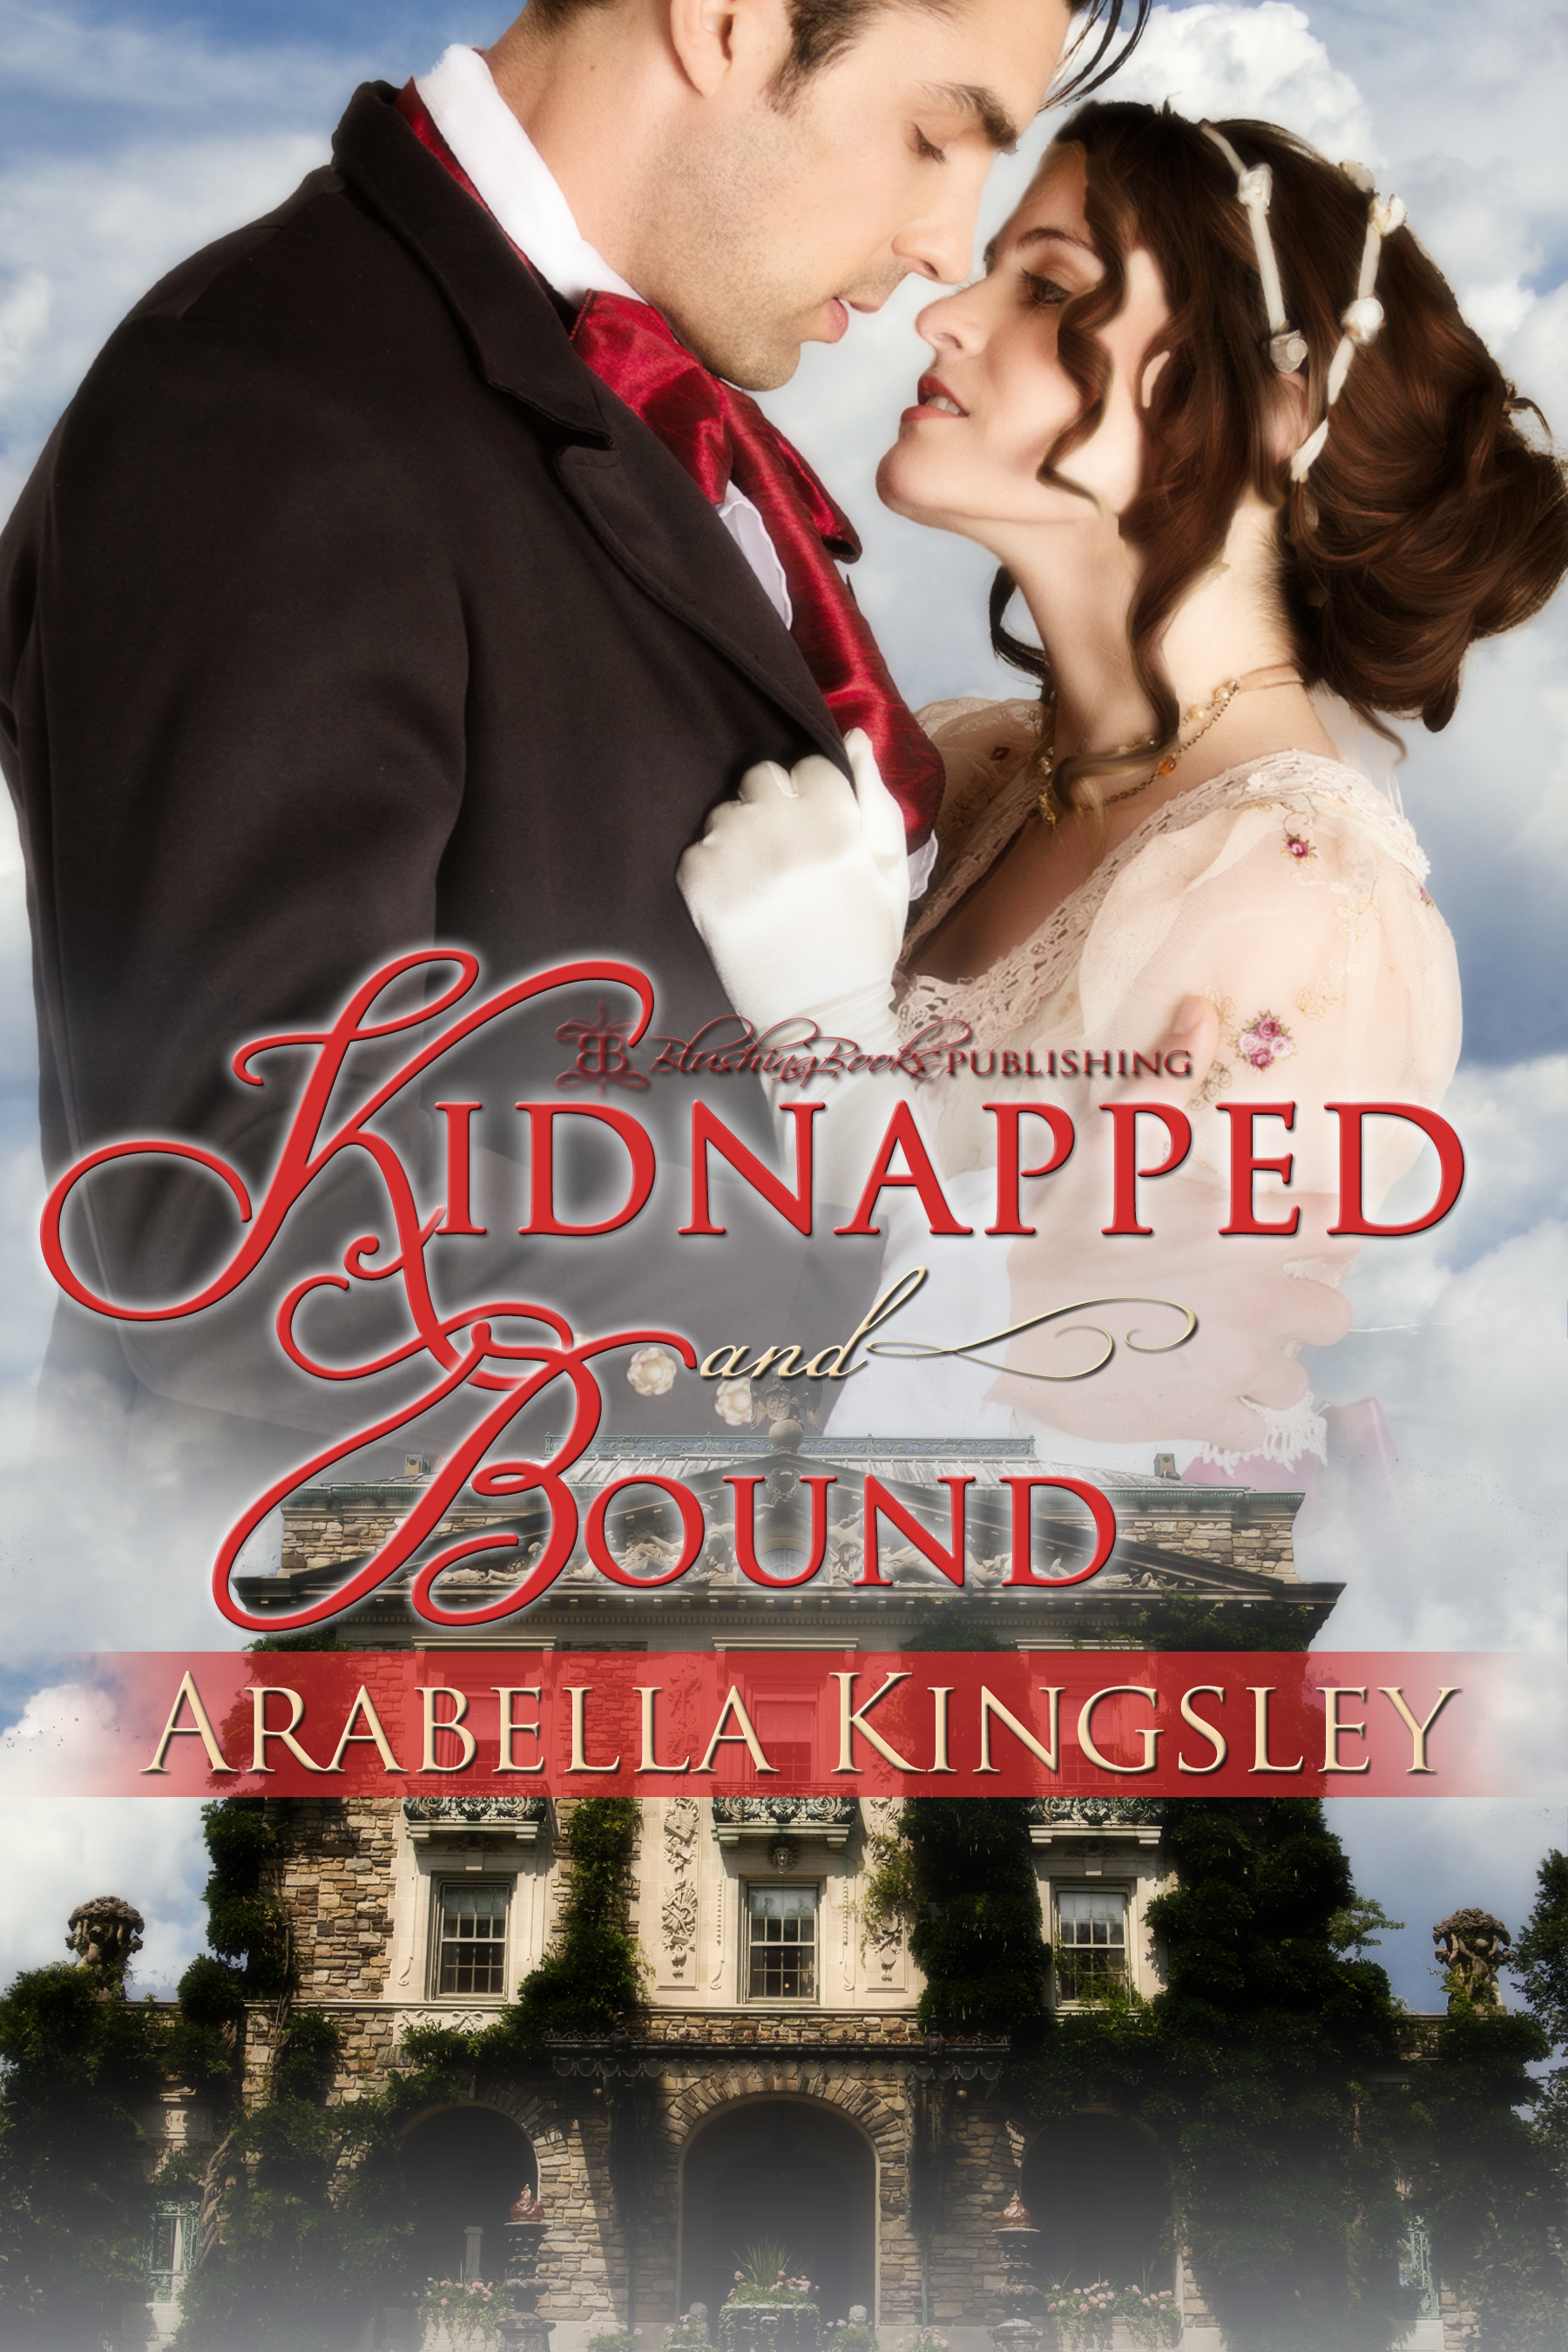 Arabella Kingsley - Kidnapped and Bound